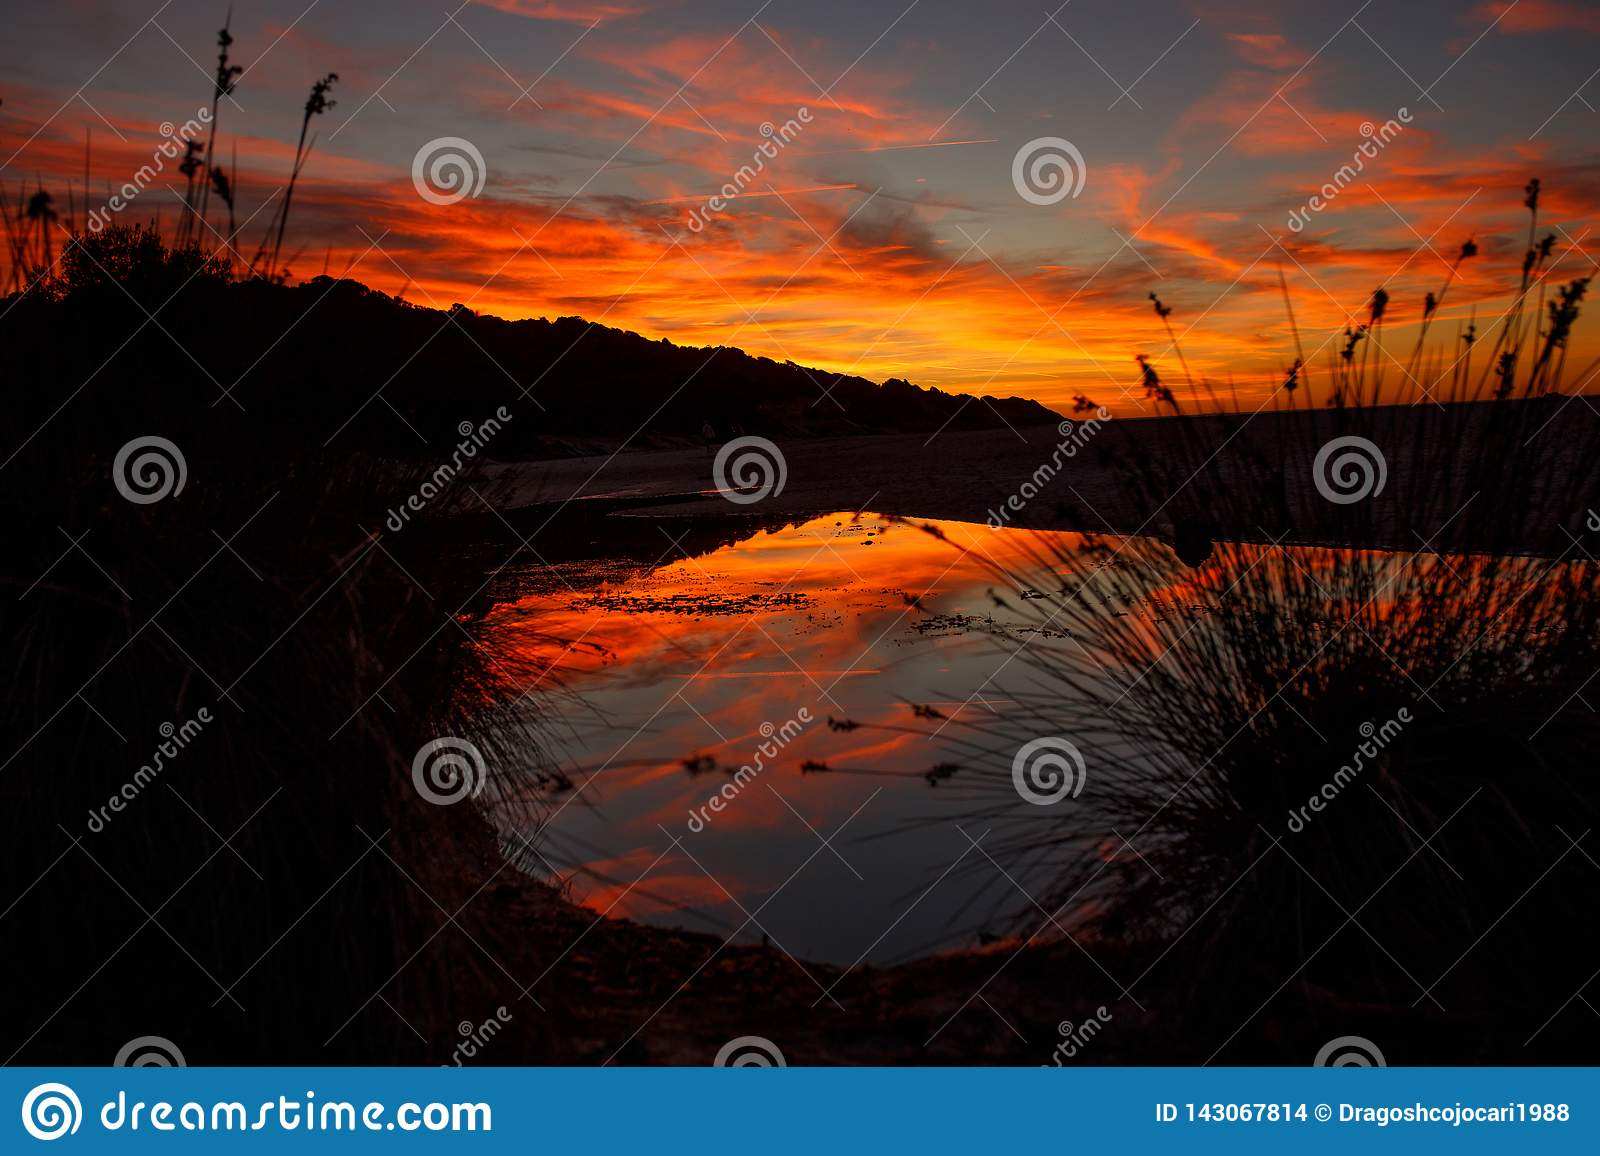 Amazing blazing sunset landscape over the island and the sky above it with an awesome sun. sunset view on the beach